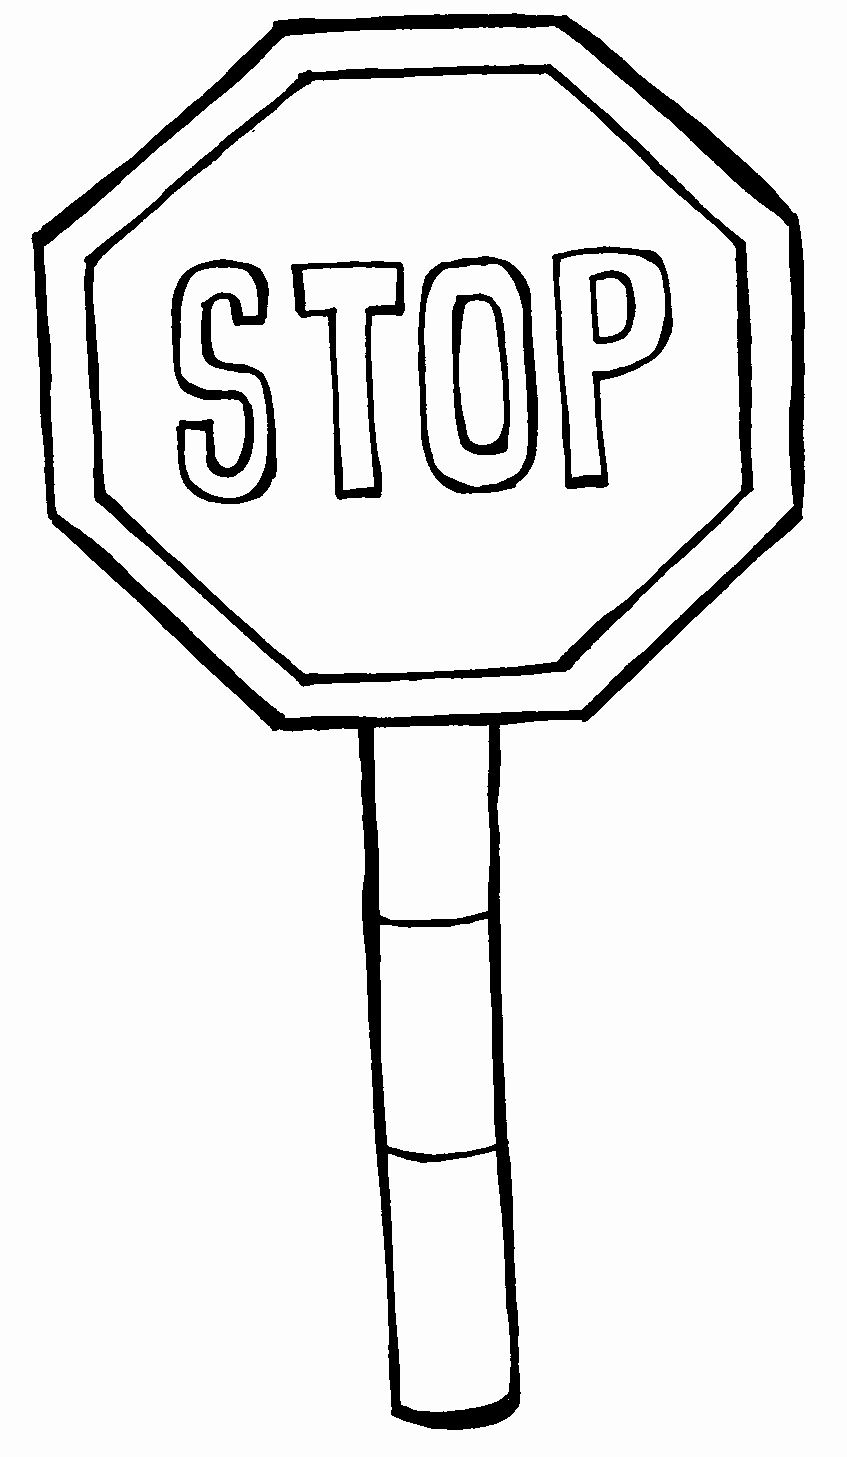 Stop Sign Coloring Page Inspirational Pics Stop Drawn Stop Signs Clipart Best In 2020 Coloring Pages Road Signs Coloring Pages Inspirational